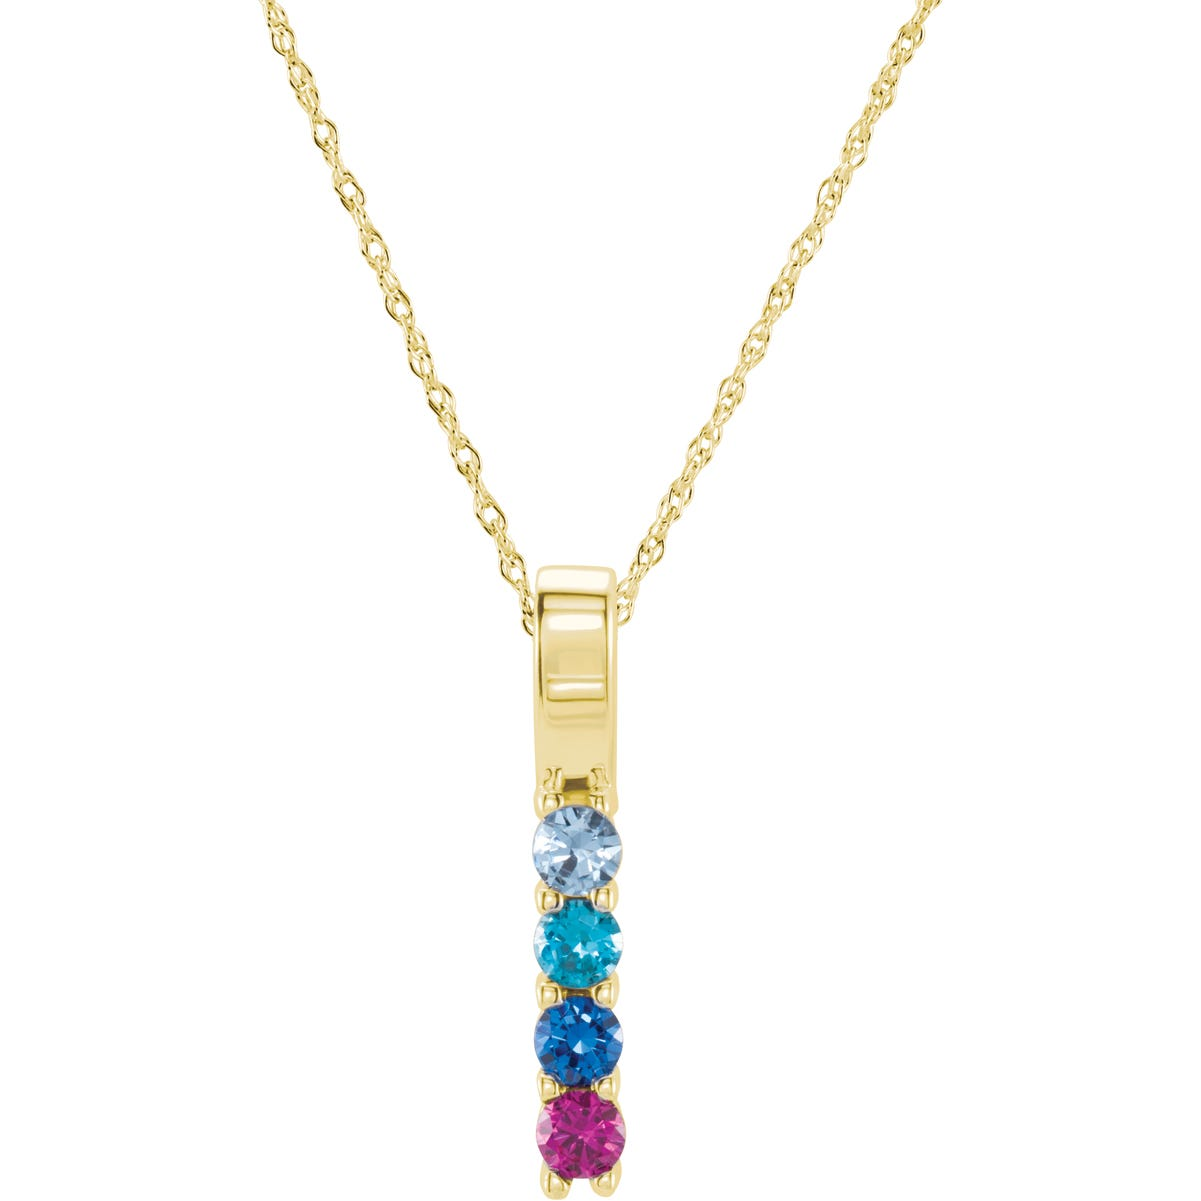 4-Stone Family Vertical Bar Pendant in 14k Yellow Gold